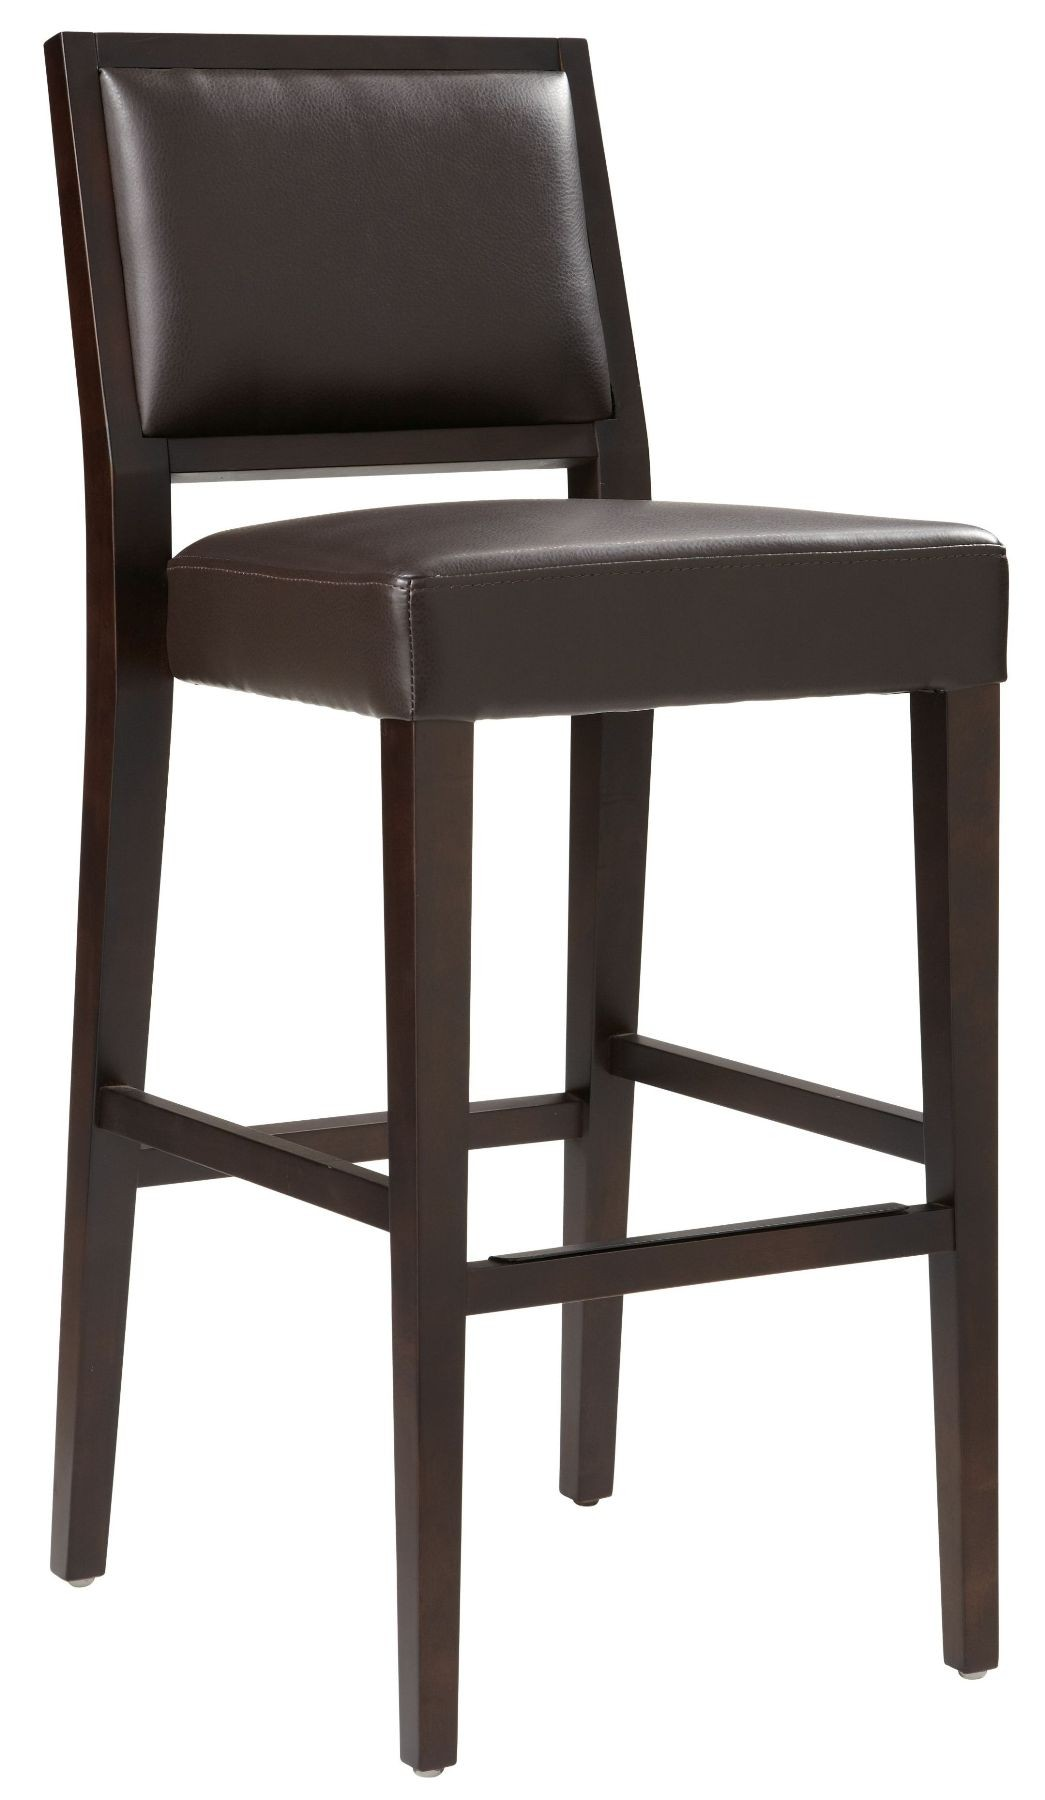 Citizen Brown Barstool from Sunpan (49051)  Coleman Furniture